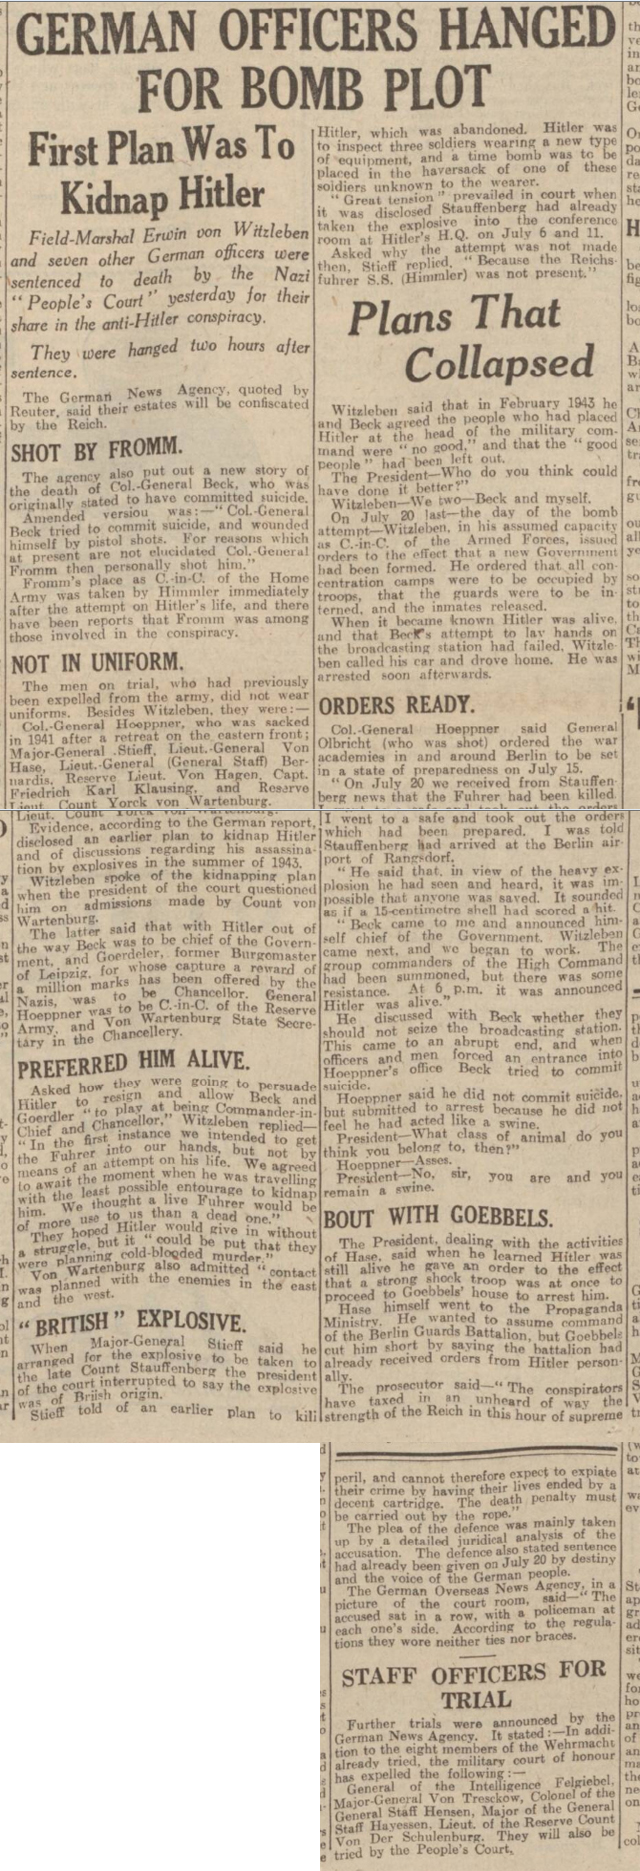 historical newspaper report on the The Plot to Assassinate Hitler